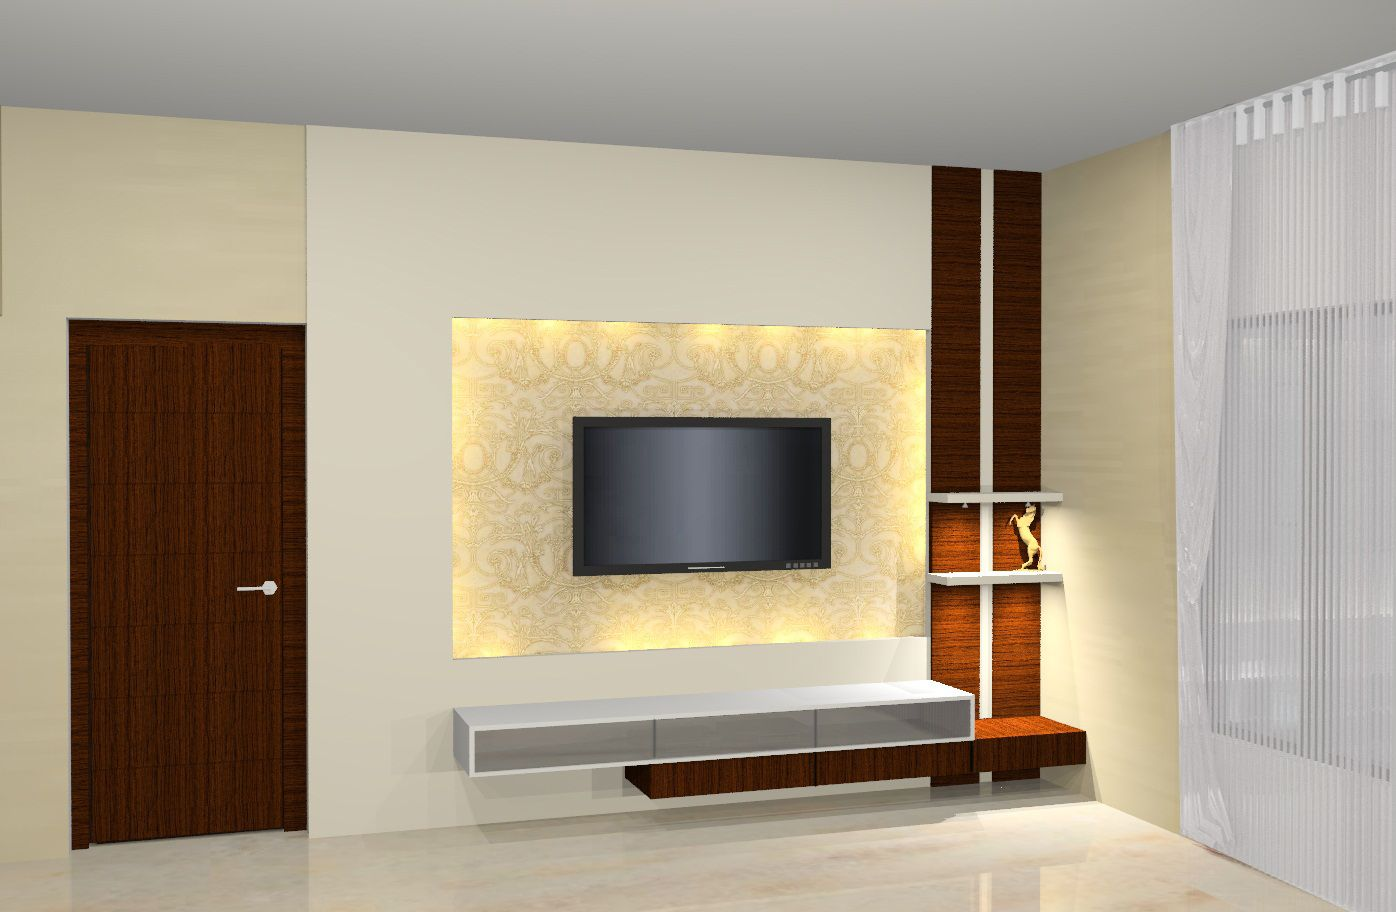 T v unit designs upper family pinteres for Lcd wall unit designs for hall